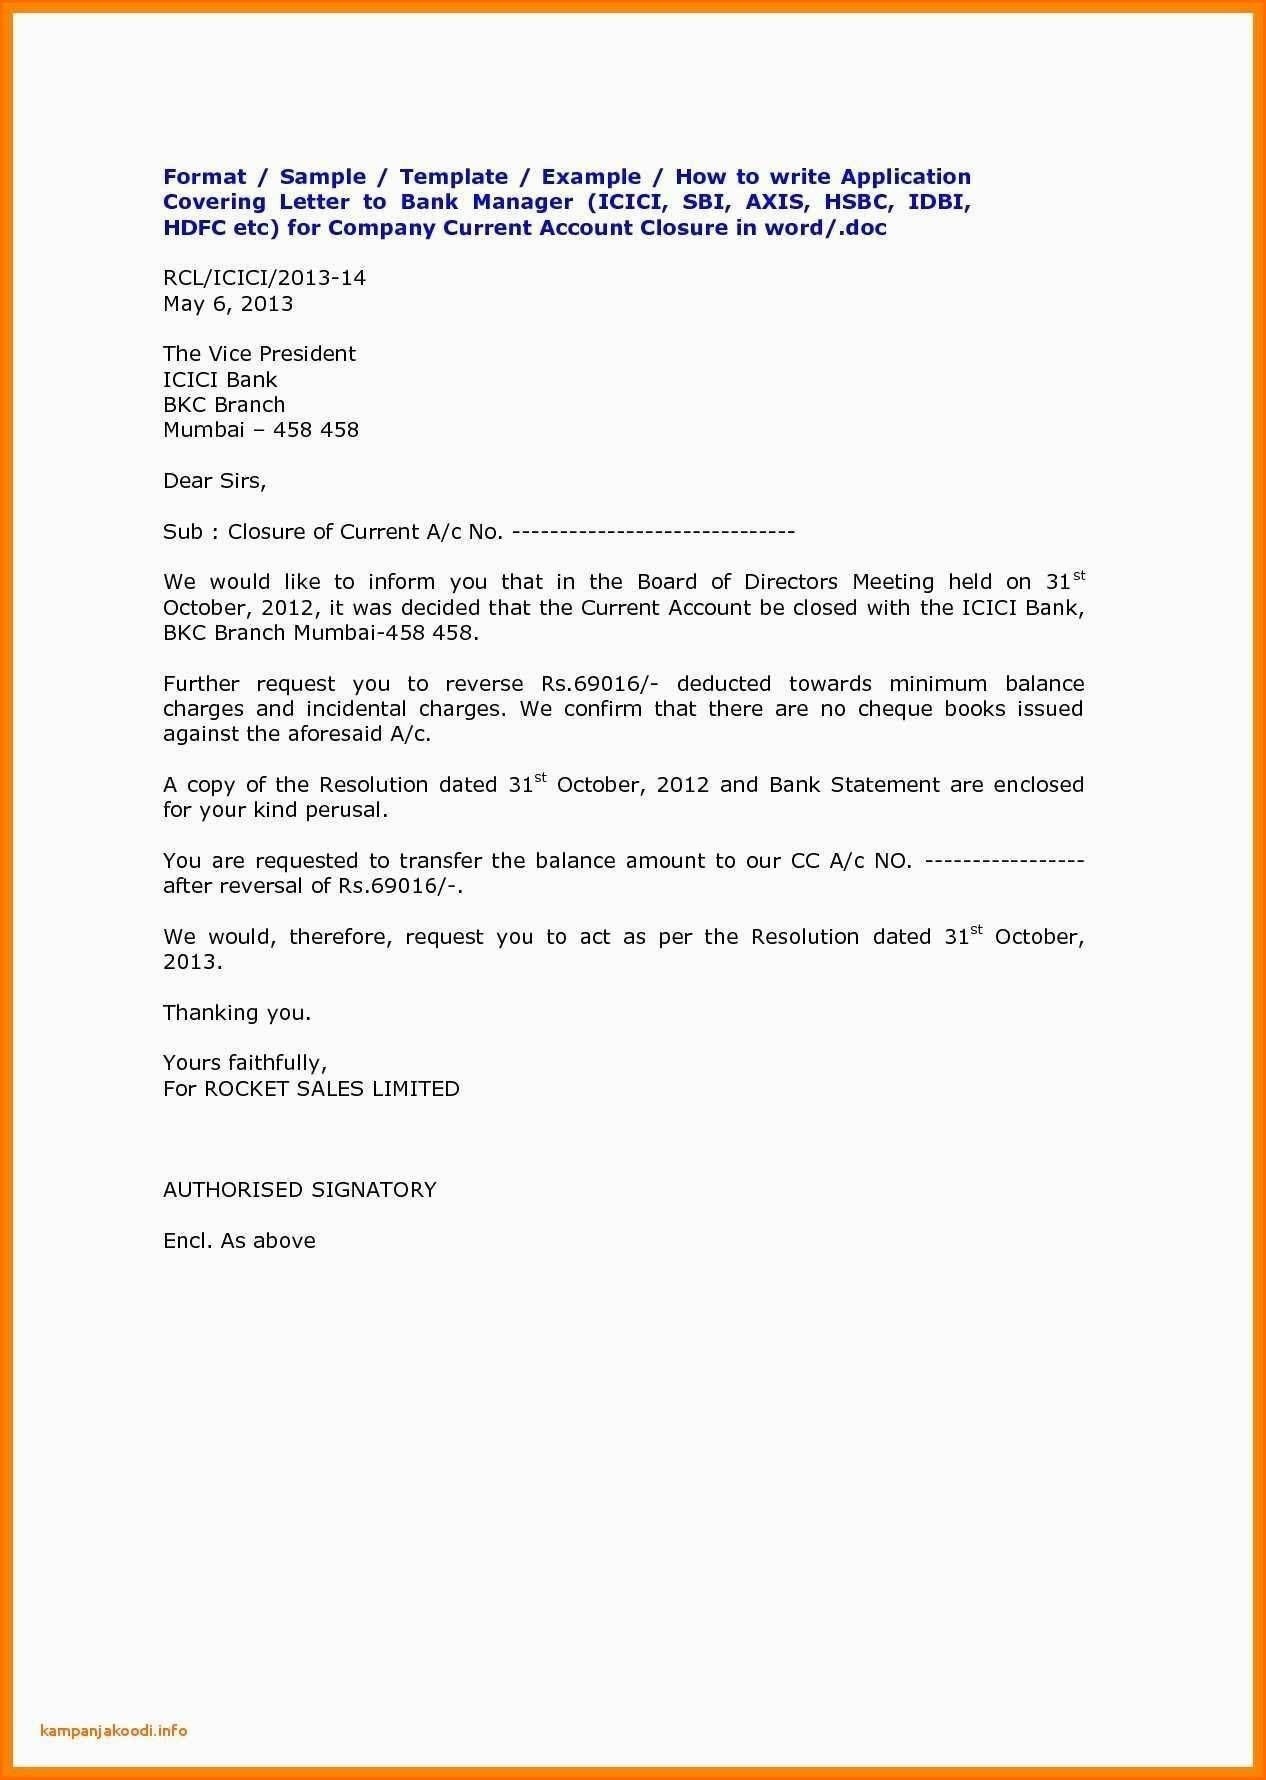 95de409de43e6bbd78d3252b037a795c Sample Application Letter For Bank Account Transfer on